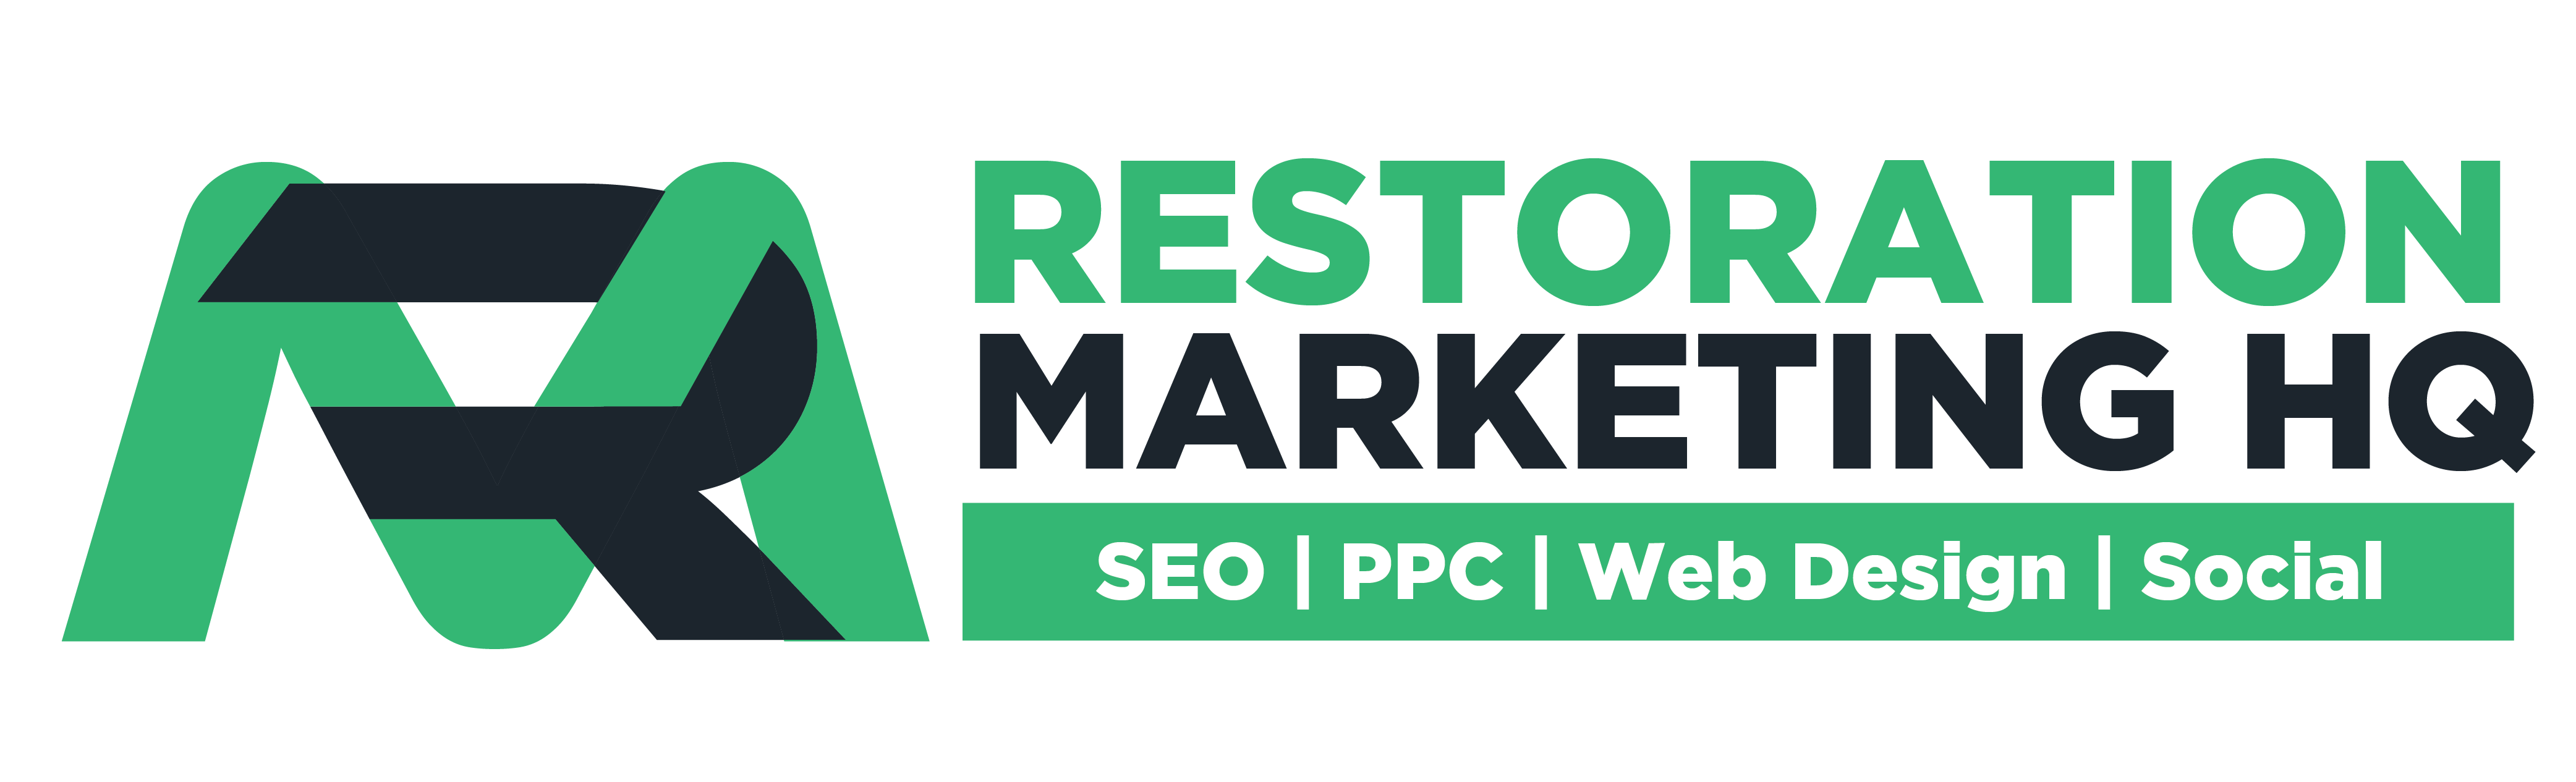 Restoration Marketing HQ